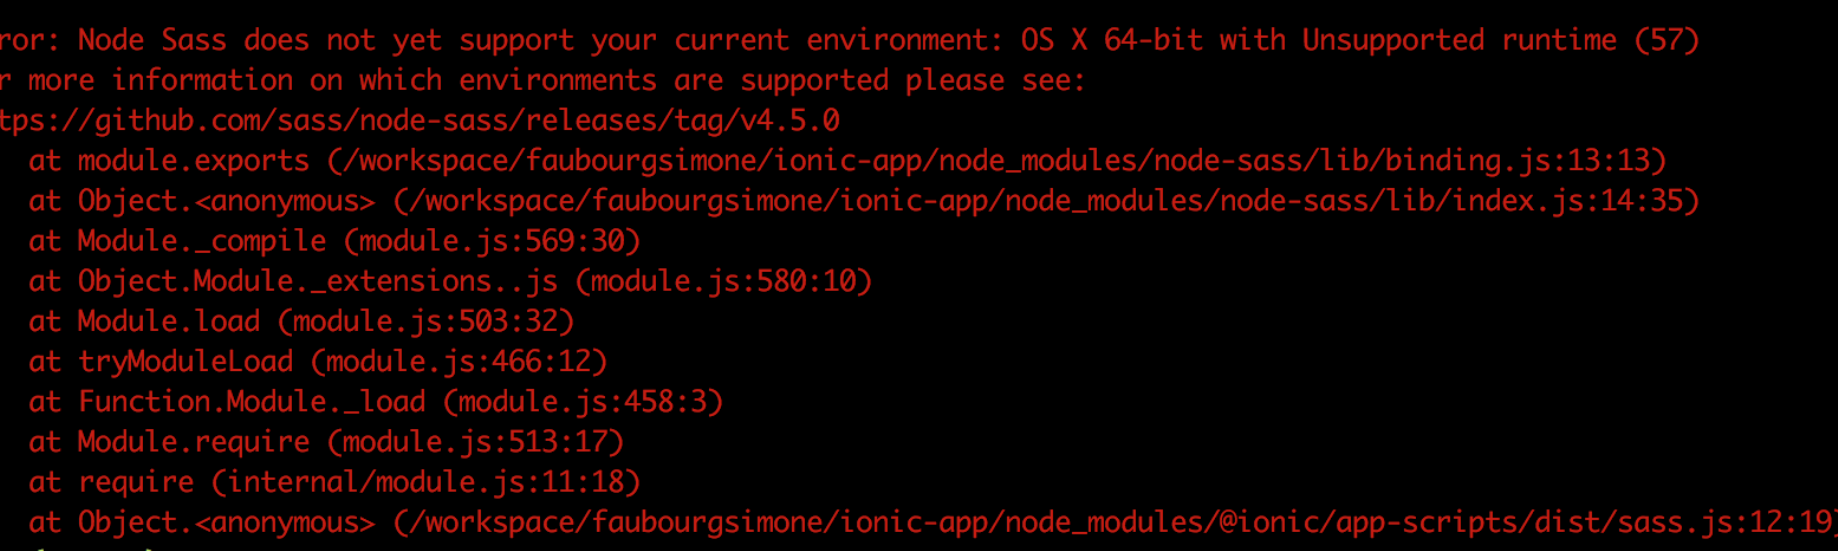 """How to fix """"Error: Node Sass does not yet support your current environment:  OS X 64-bit with Unsupported runtime (57)""""   by Jennifer Proust (ג'ניפר  פרוסט)   Medium"""